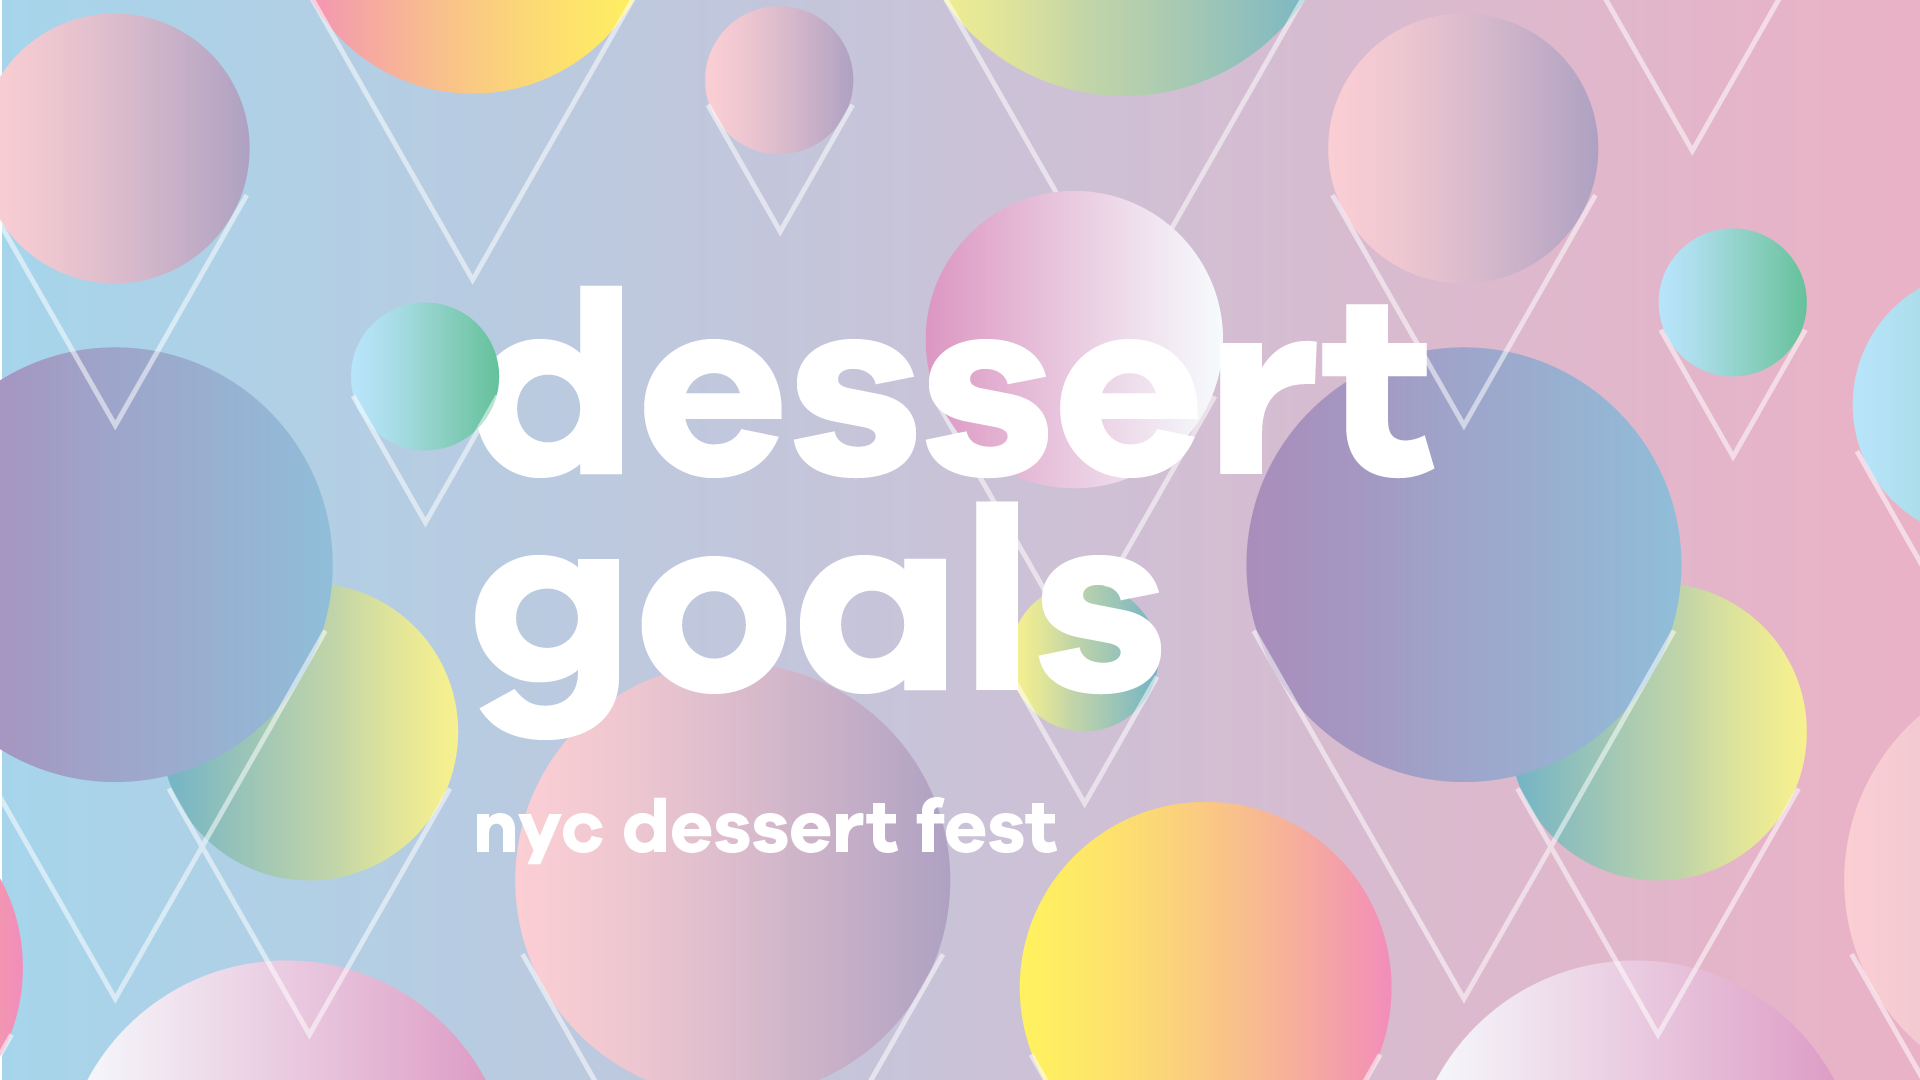 Liang & her co-founder Miraya founded Dessert Goals after bonding over a love for desserts in the city.